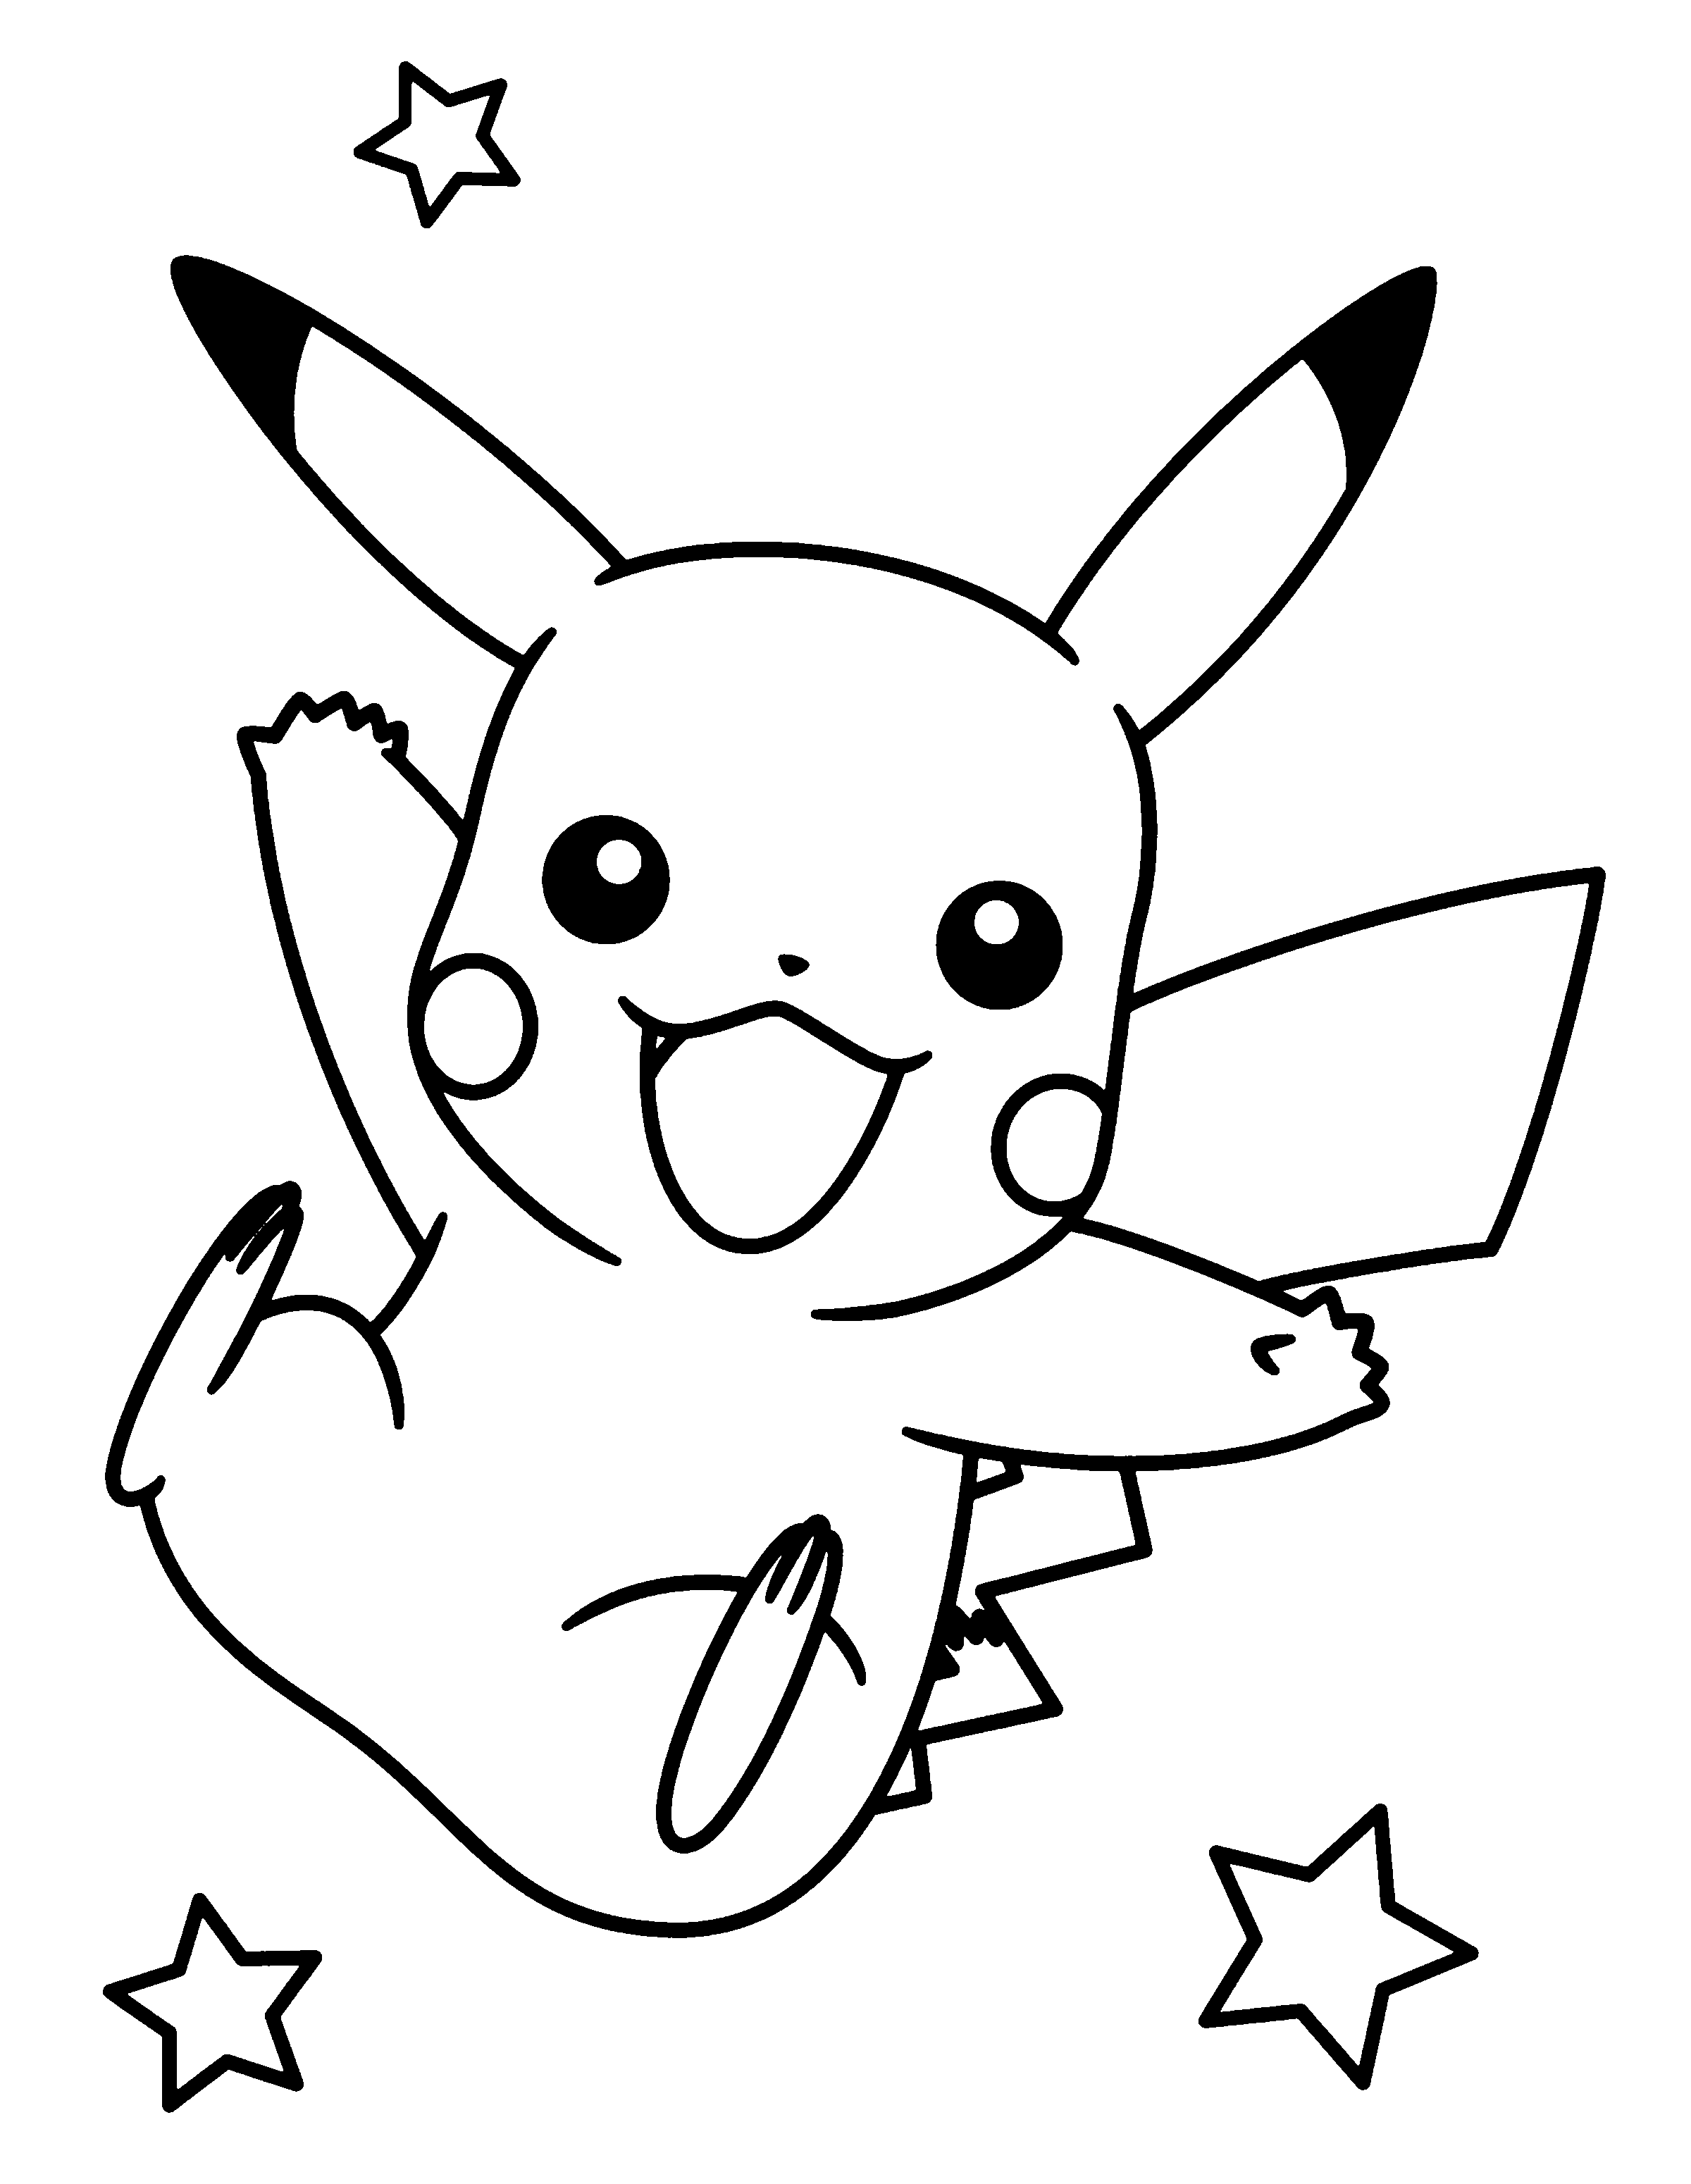 pokemon printables, pikachu a